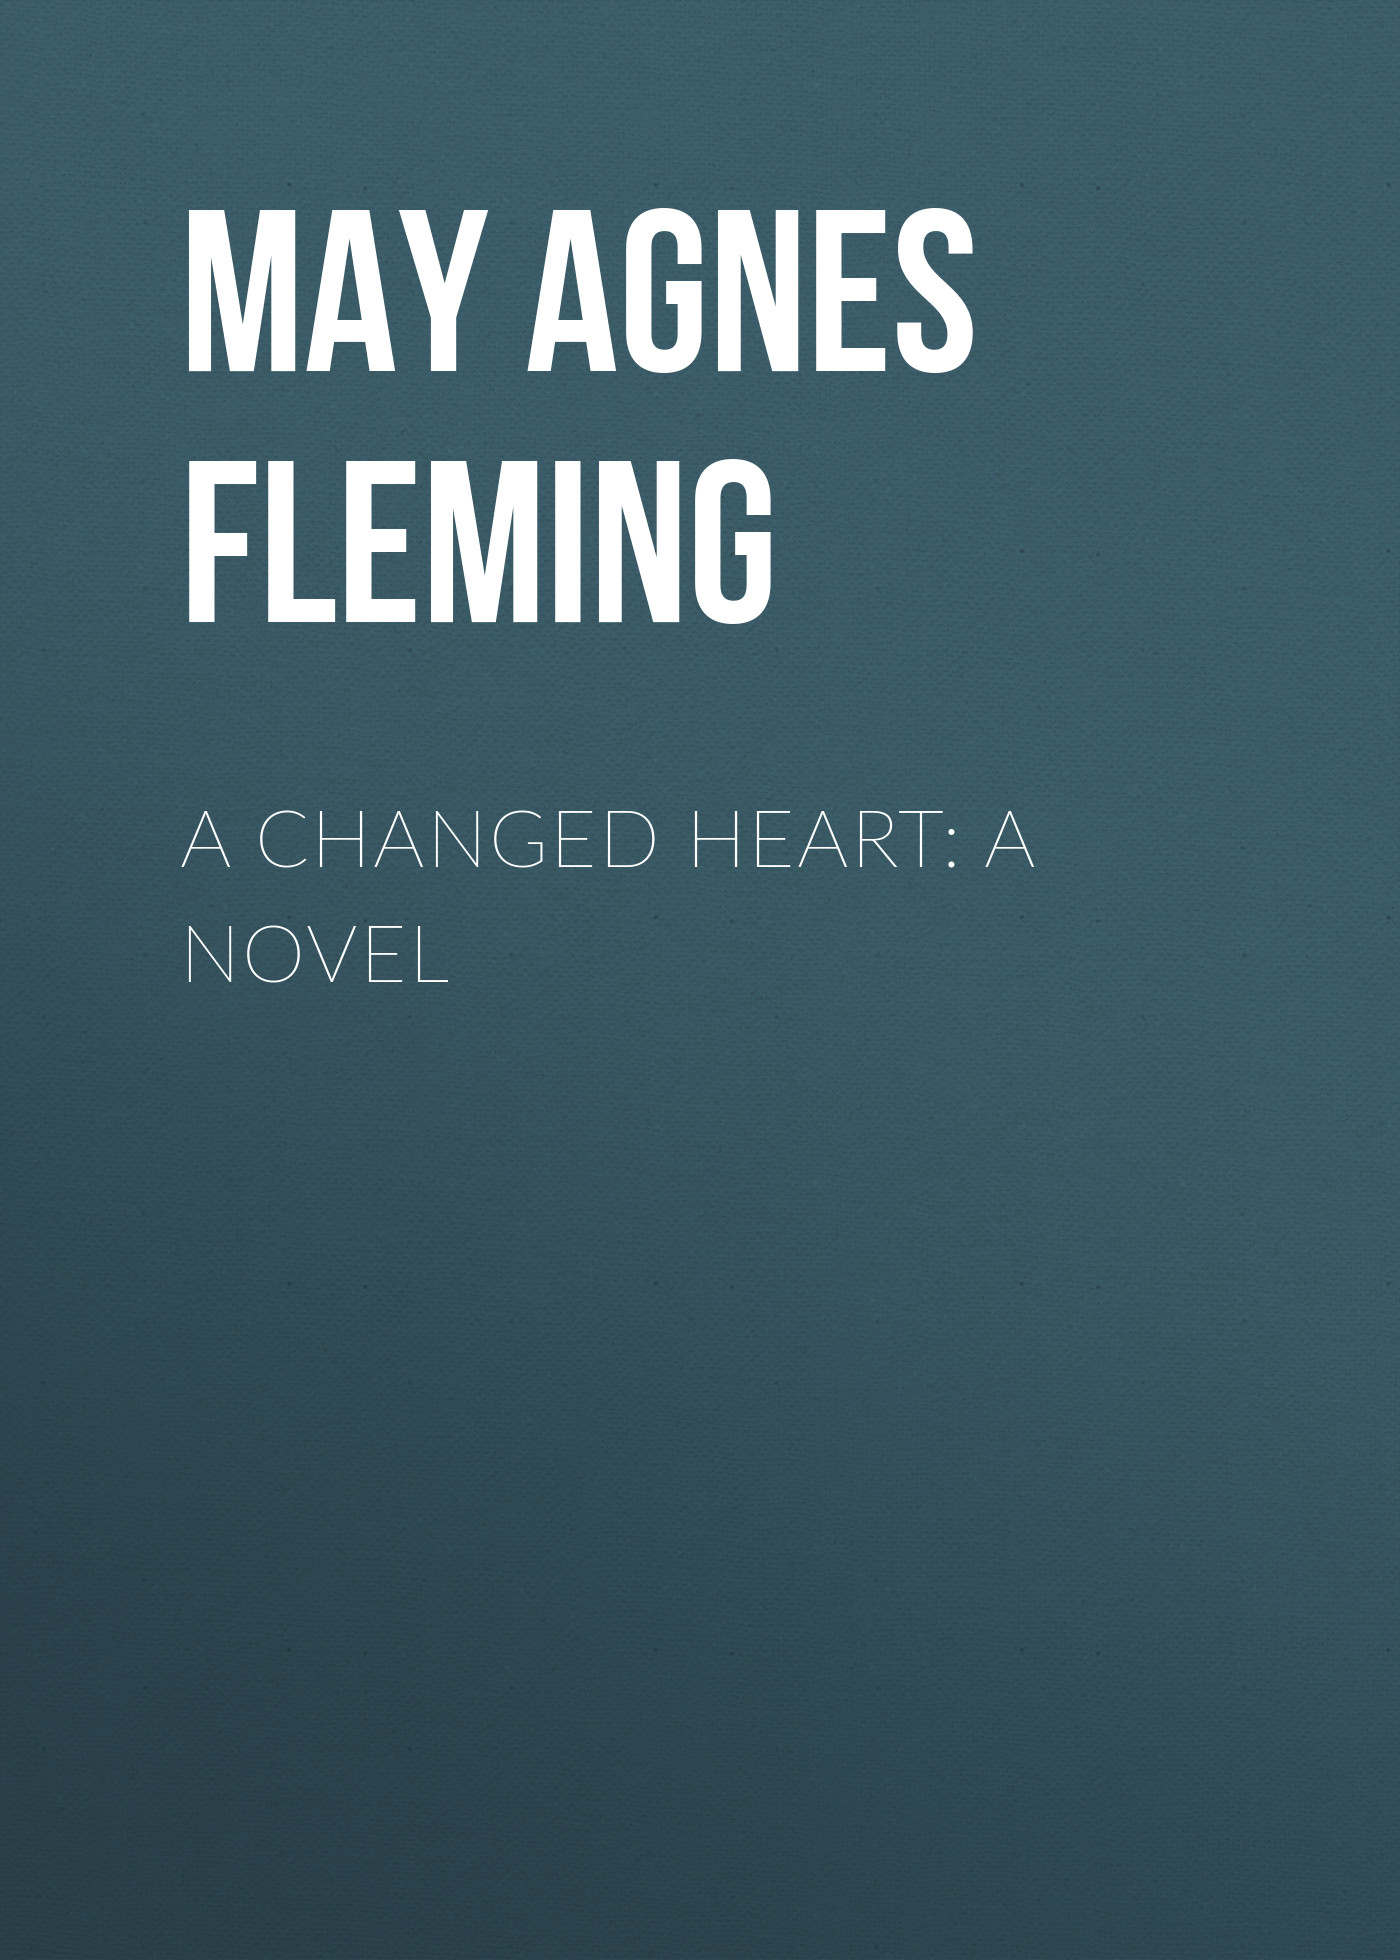 May Agnes Fleming A Changed Heart A Novel